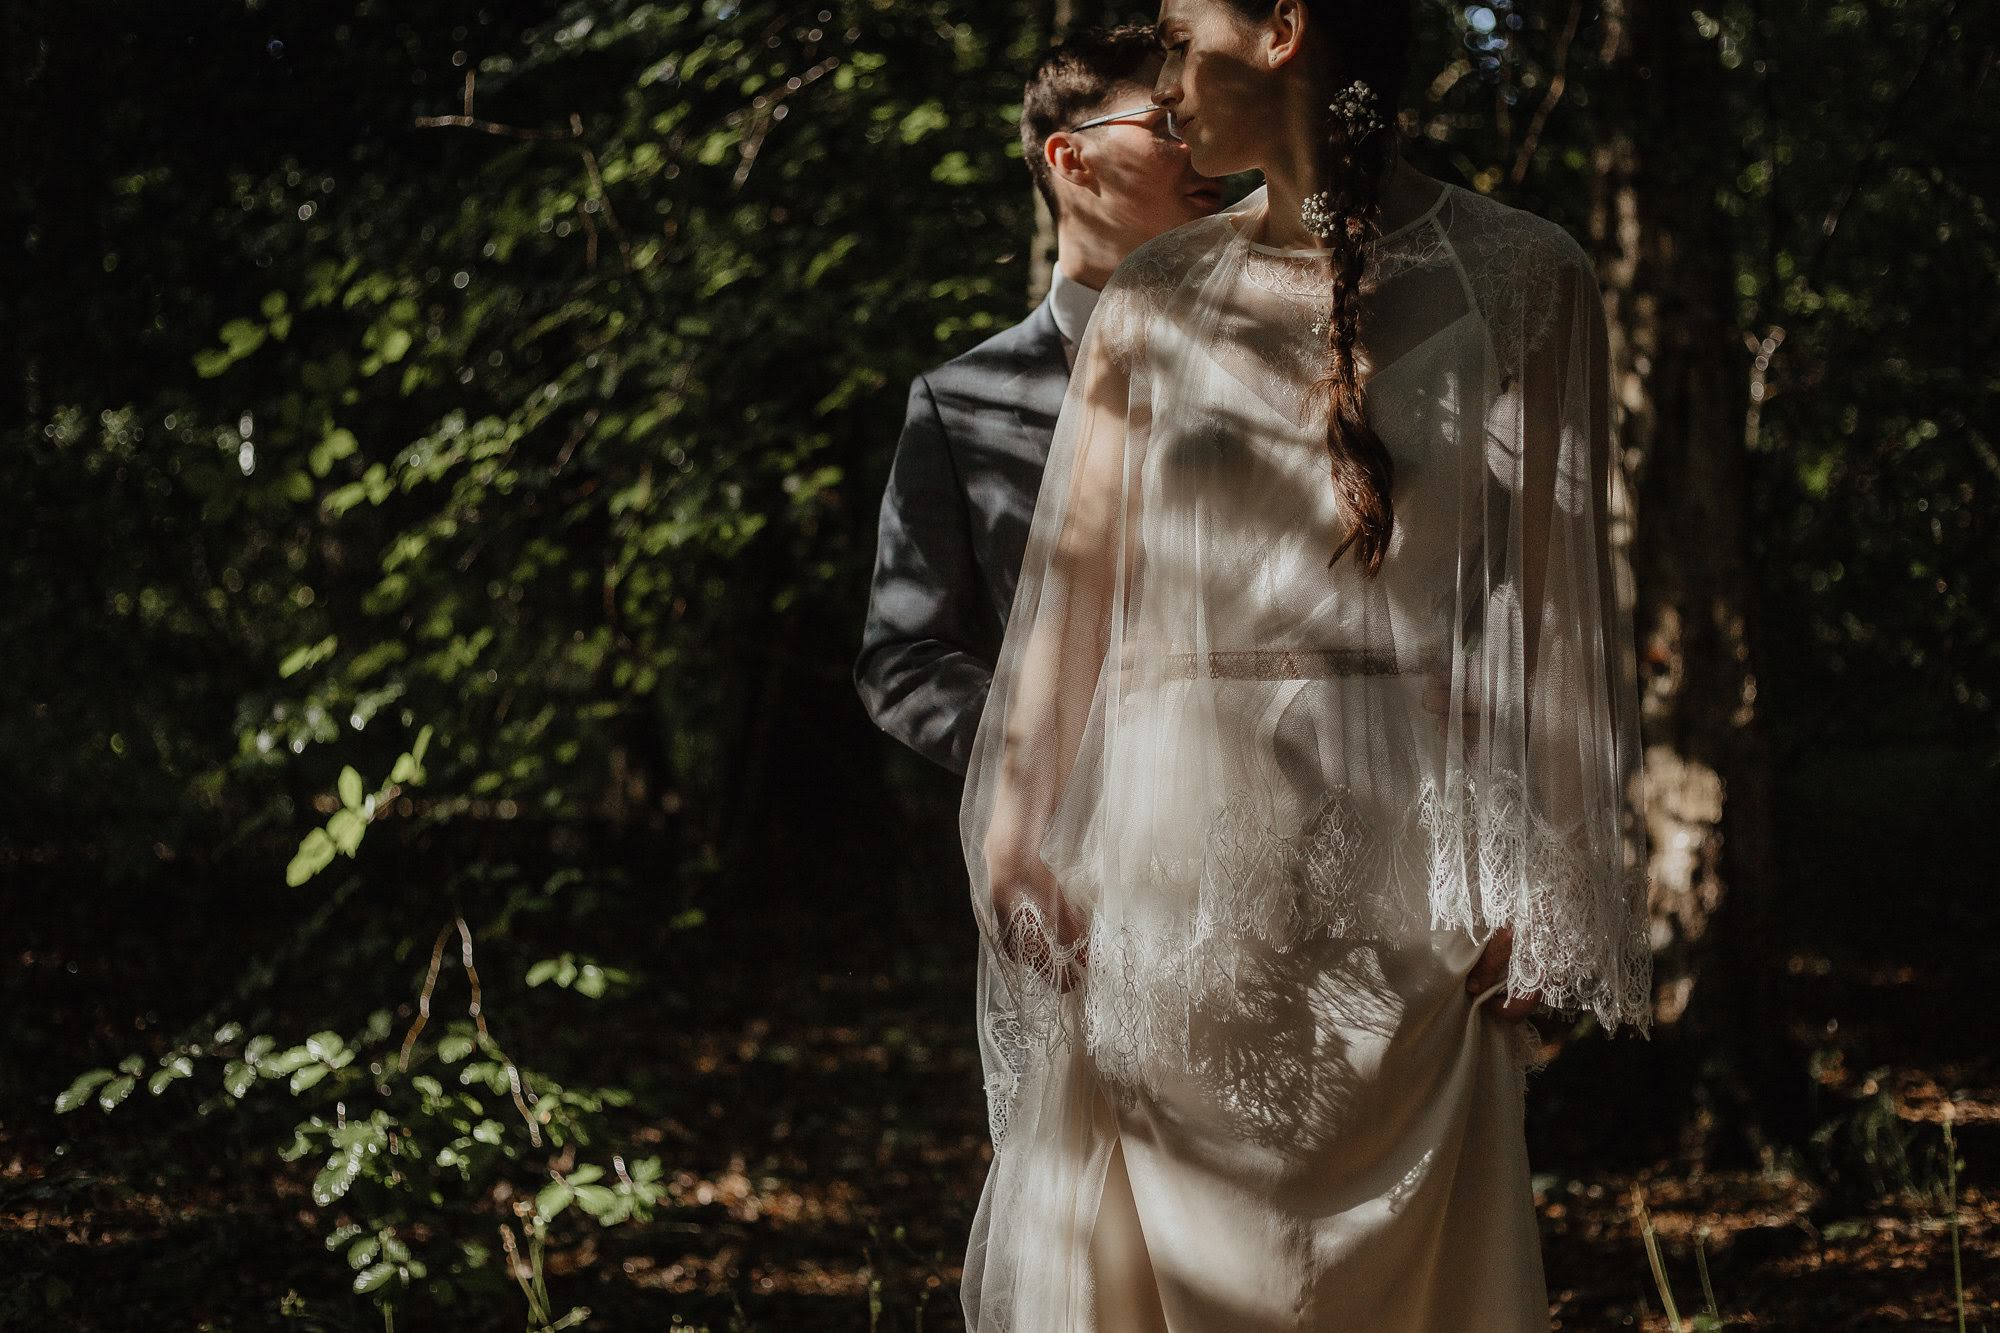 Rowanne-Laid-back-Woodland-Wedding-Sheffield-Clematis-Lace-Silk-Bohemian-Wedding-Gown-Kate-Beaumont-33.jpg